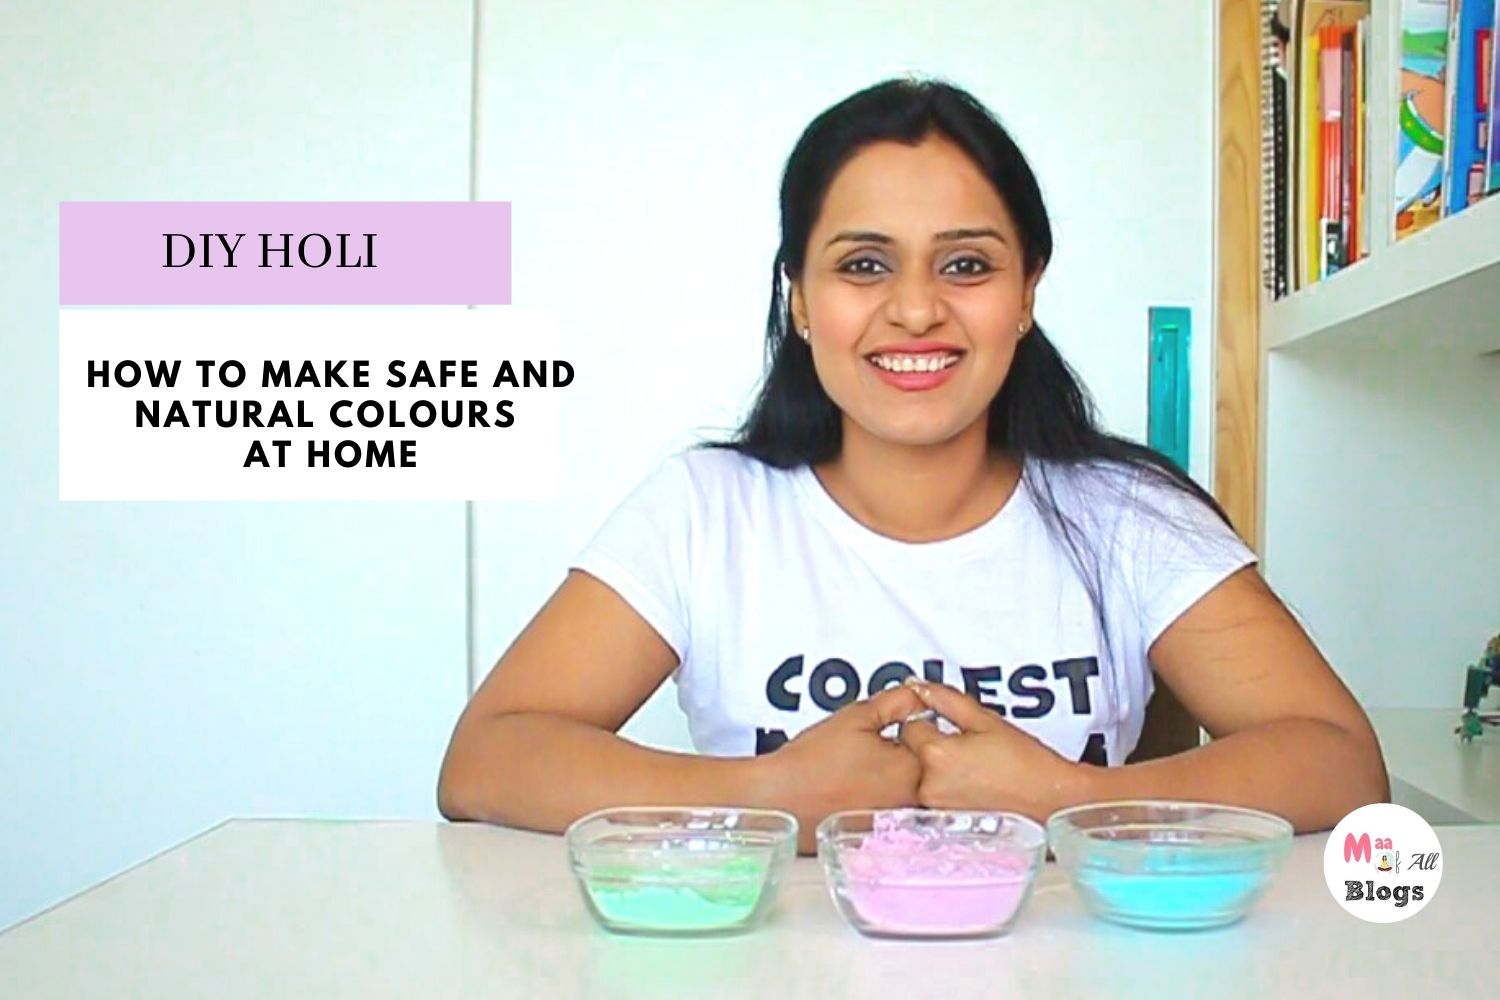 How To Make Safe And Natural Colours At Home - DIY HOLI COLOUR %